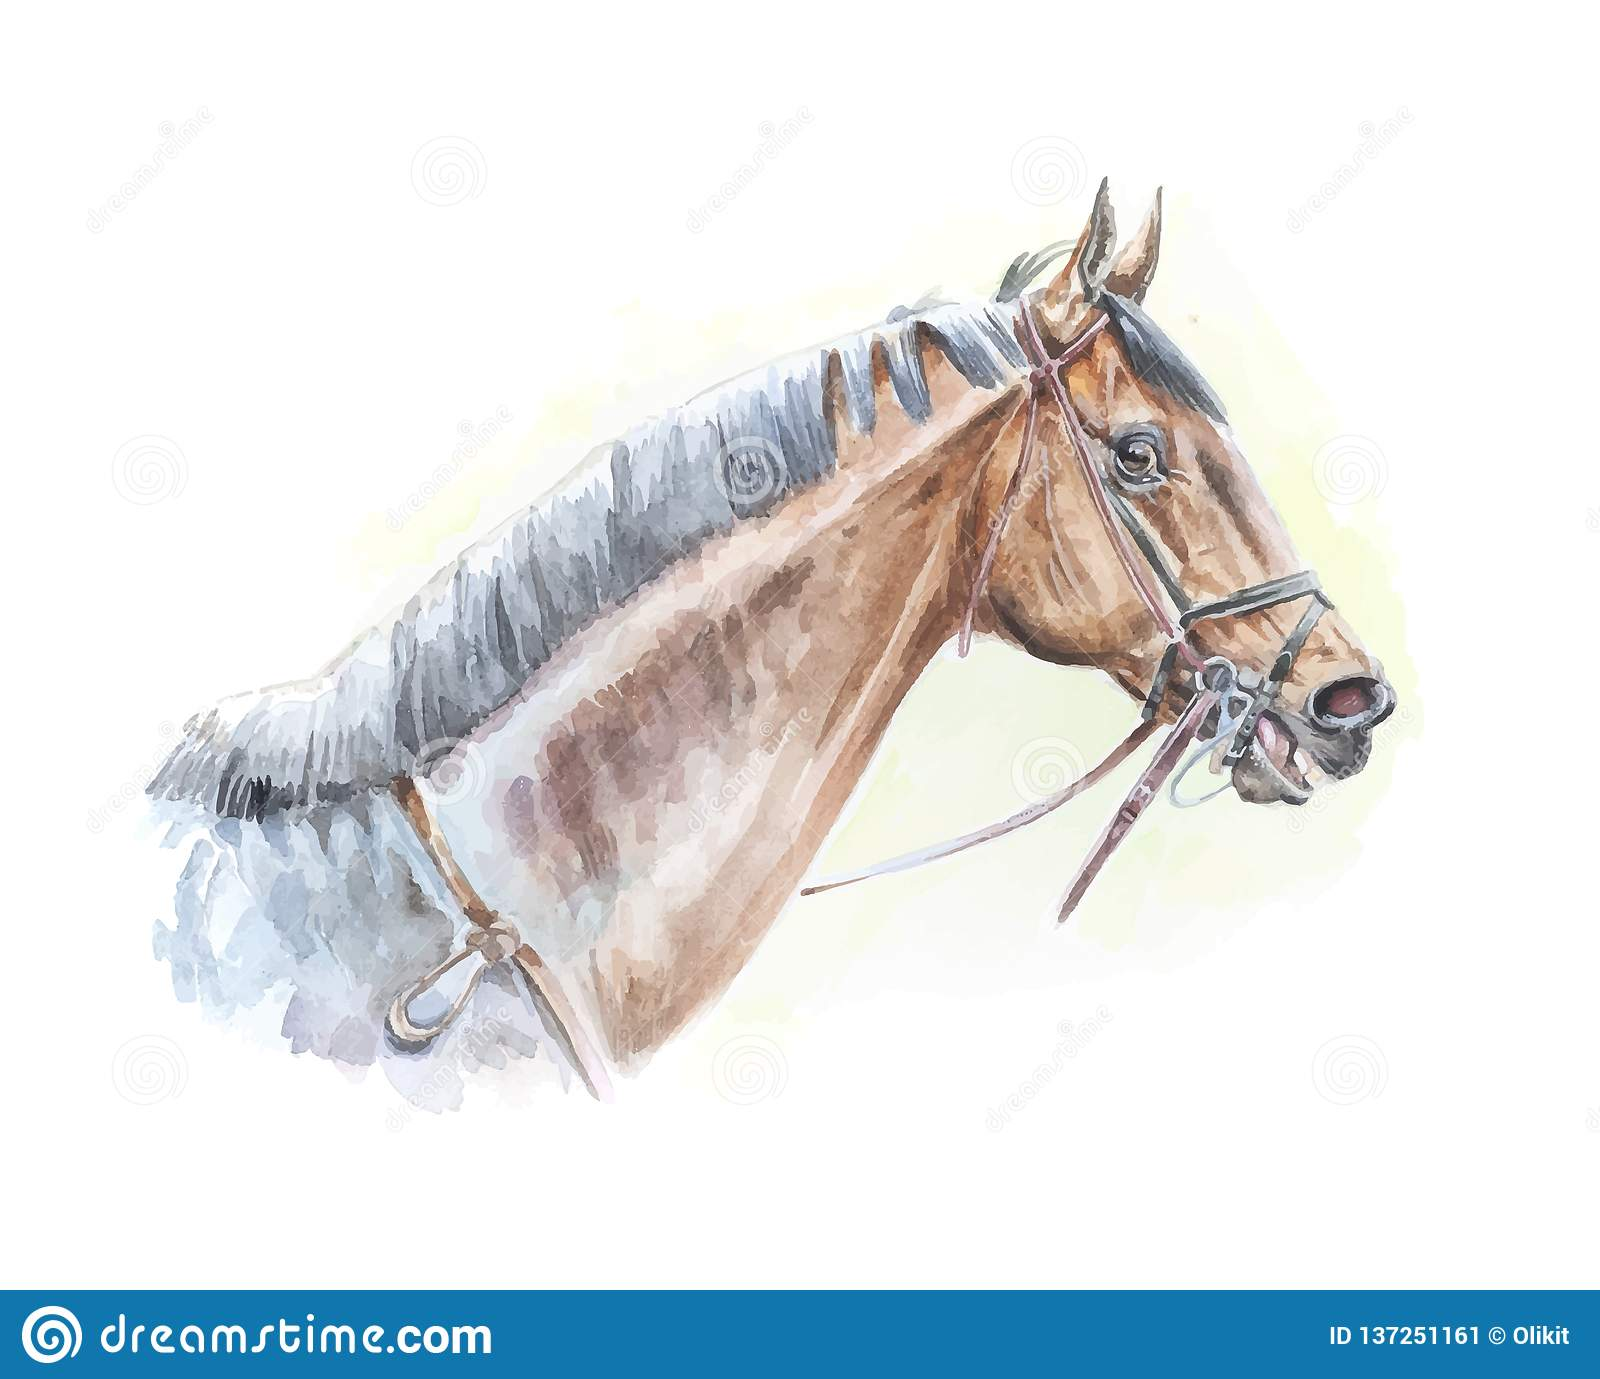 Thoroughbred Horse Watercolor Painting Portrait In Vector Format Stock Vector Illustration Of Thoroughbred Farm 137251161